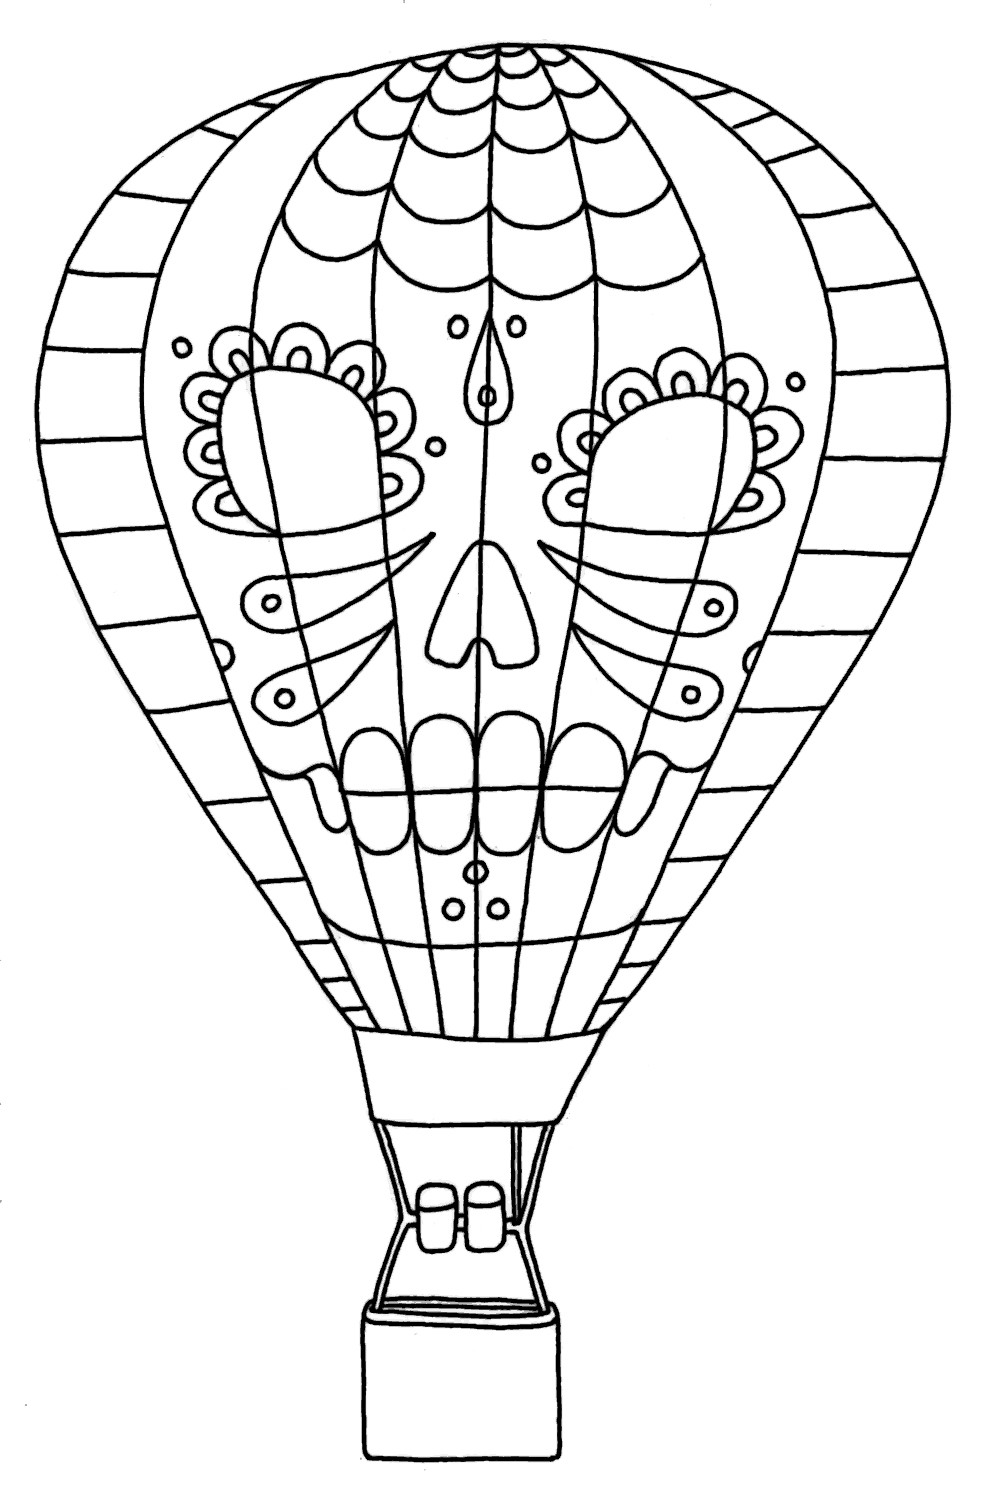 Best ideas about Balloon Coloring Pages For Kids . Save or Pin Free Printable Hot Air Balloon Coloring Pages For Kids Now.